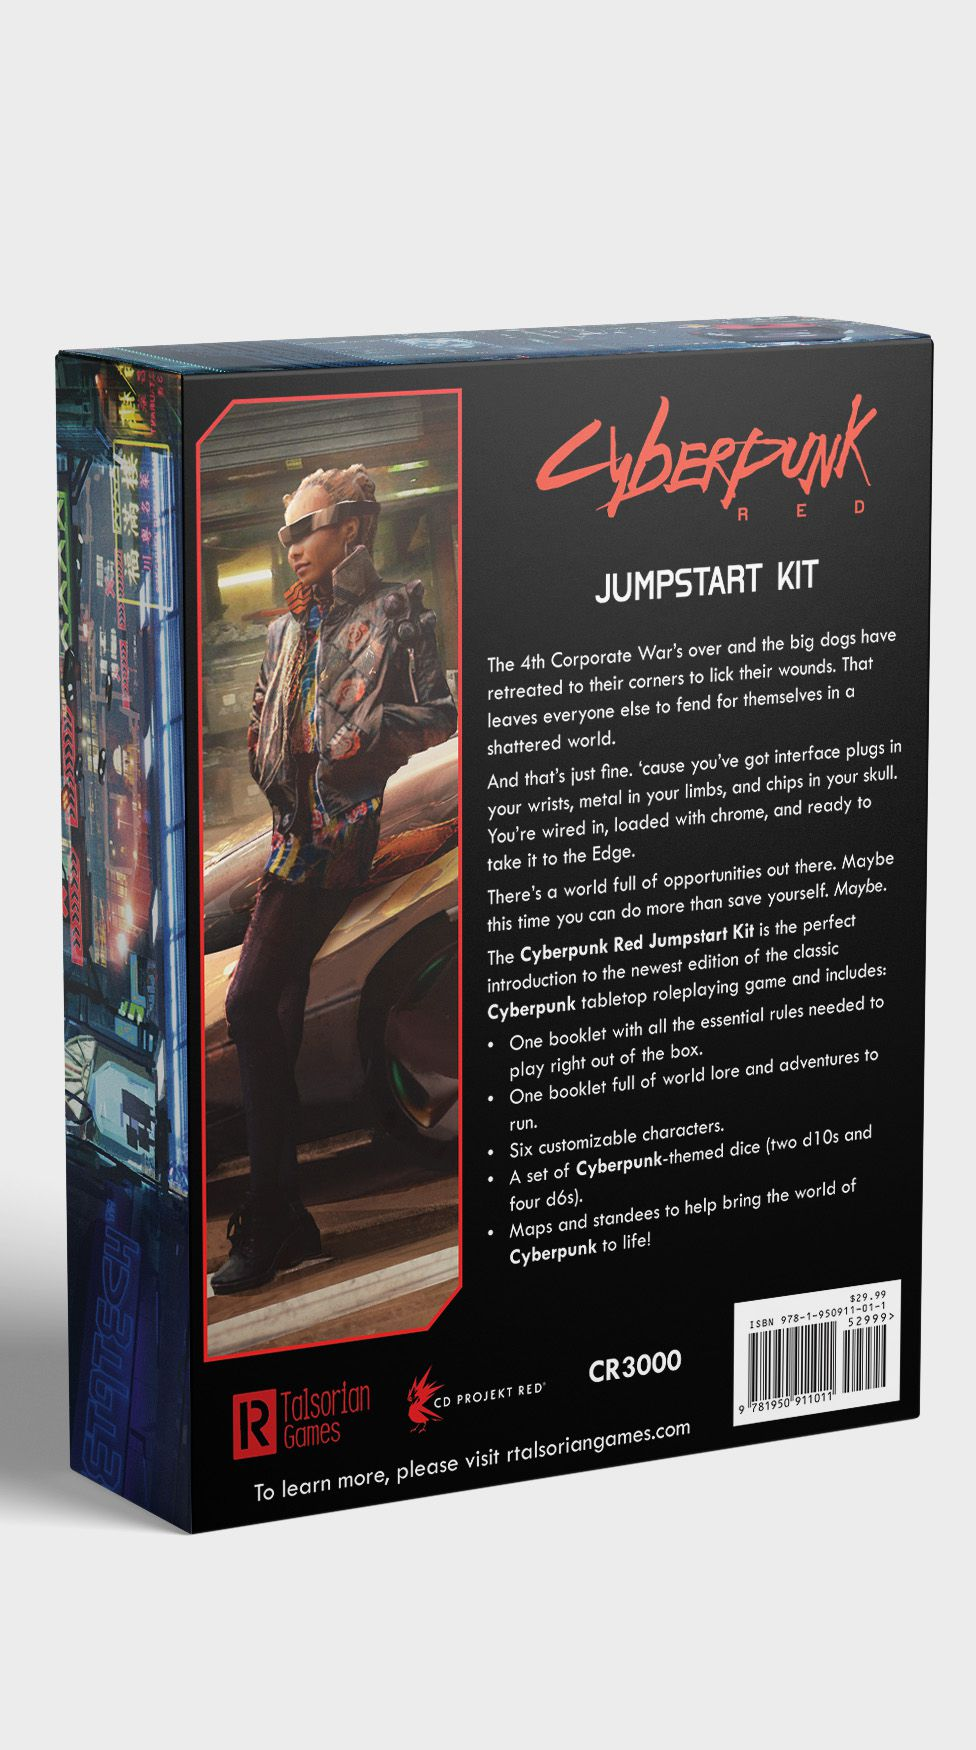 Cyberpunk 2077 tabletop RPG out this August, check out the